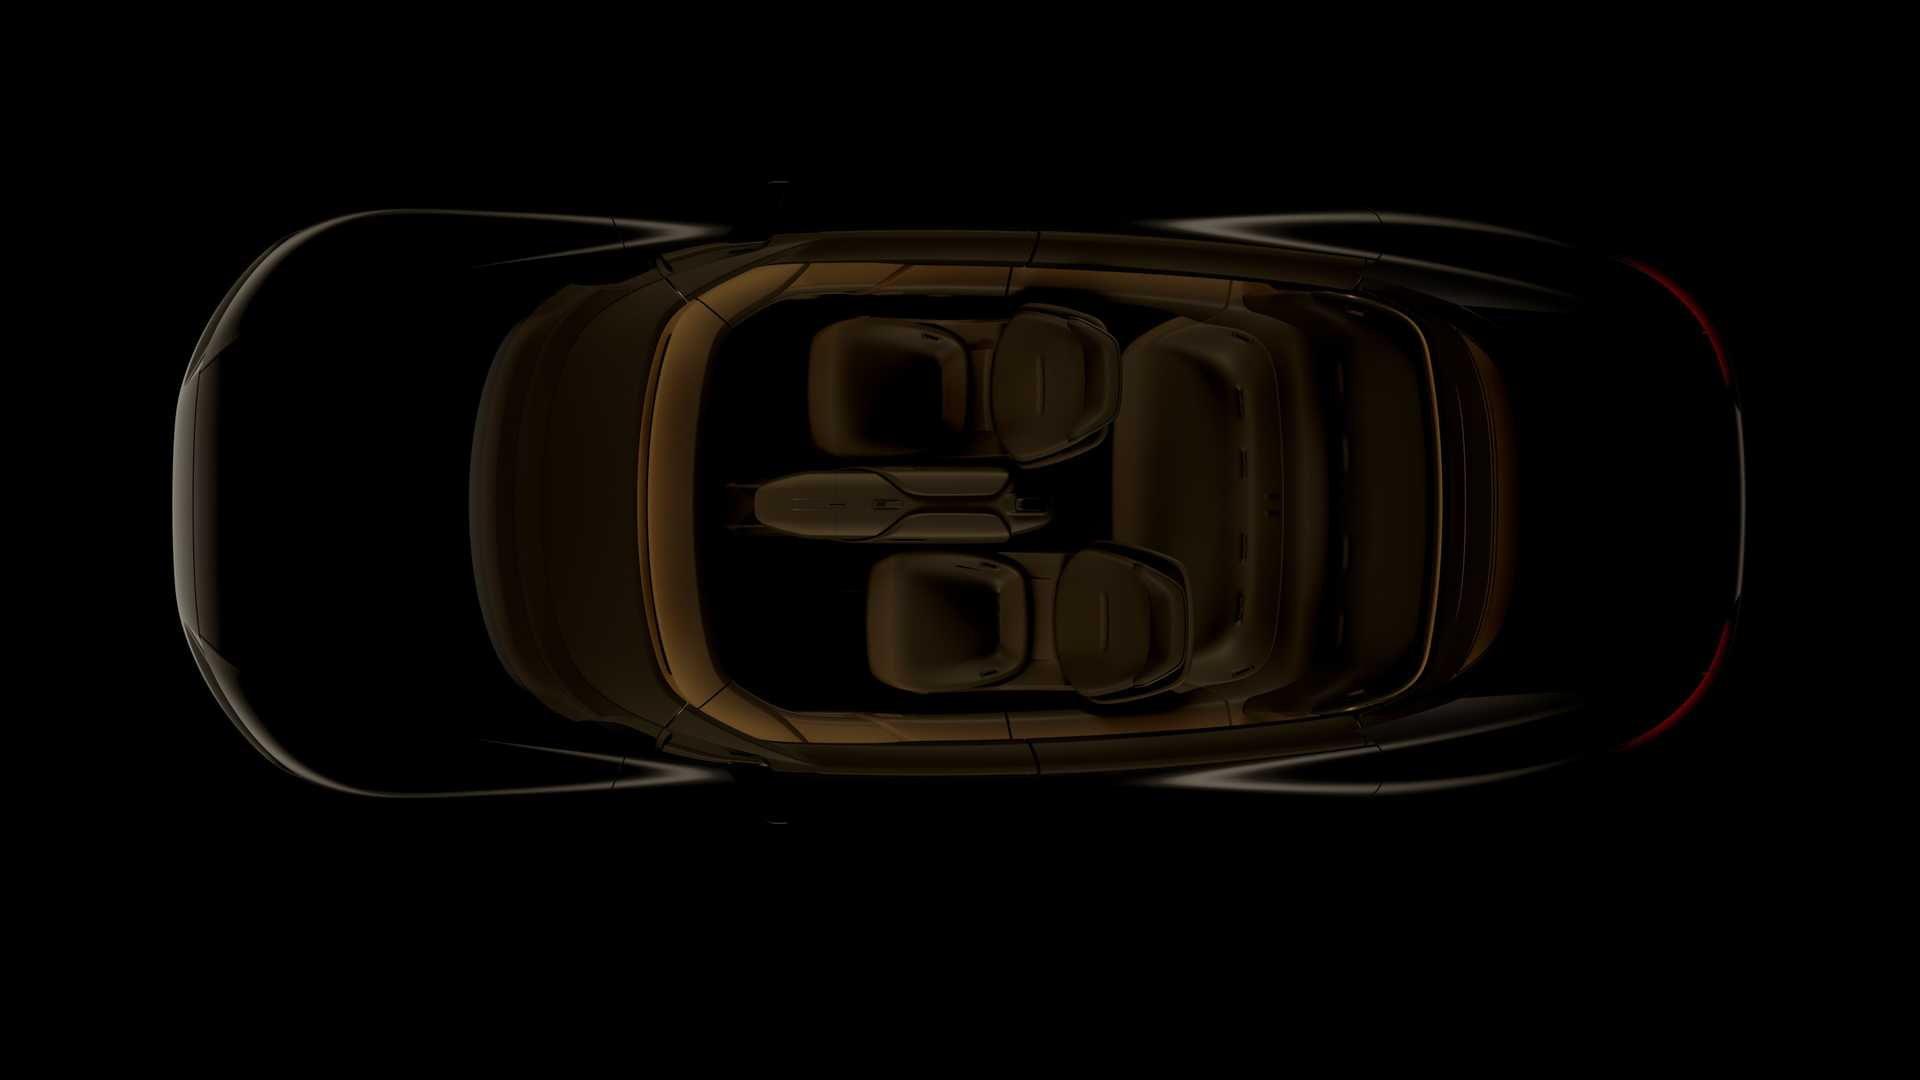 Audi-Grand-Sphere-concept-teasers-2